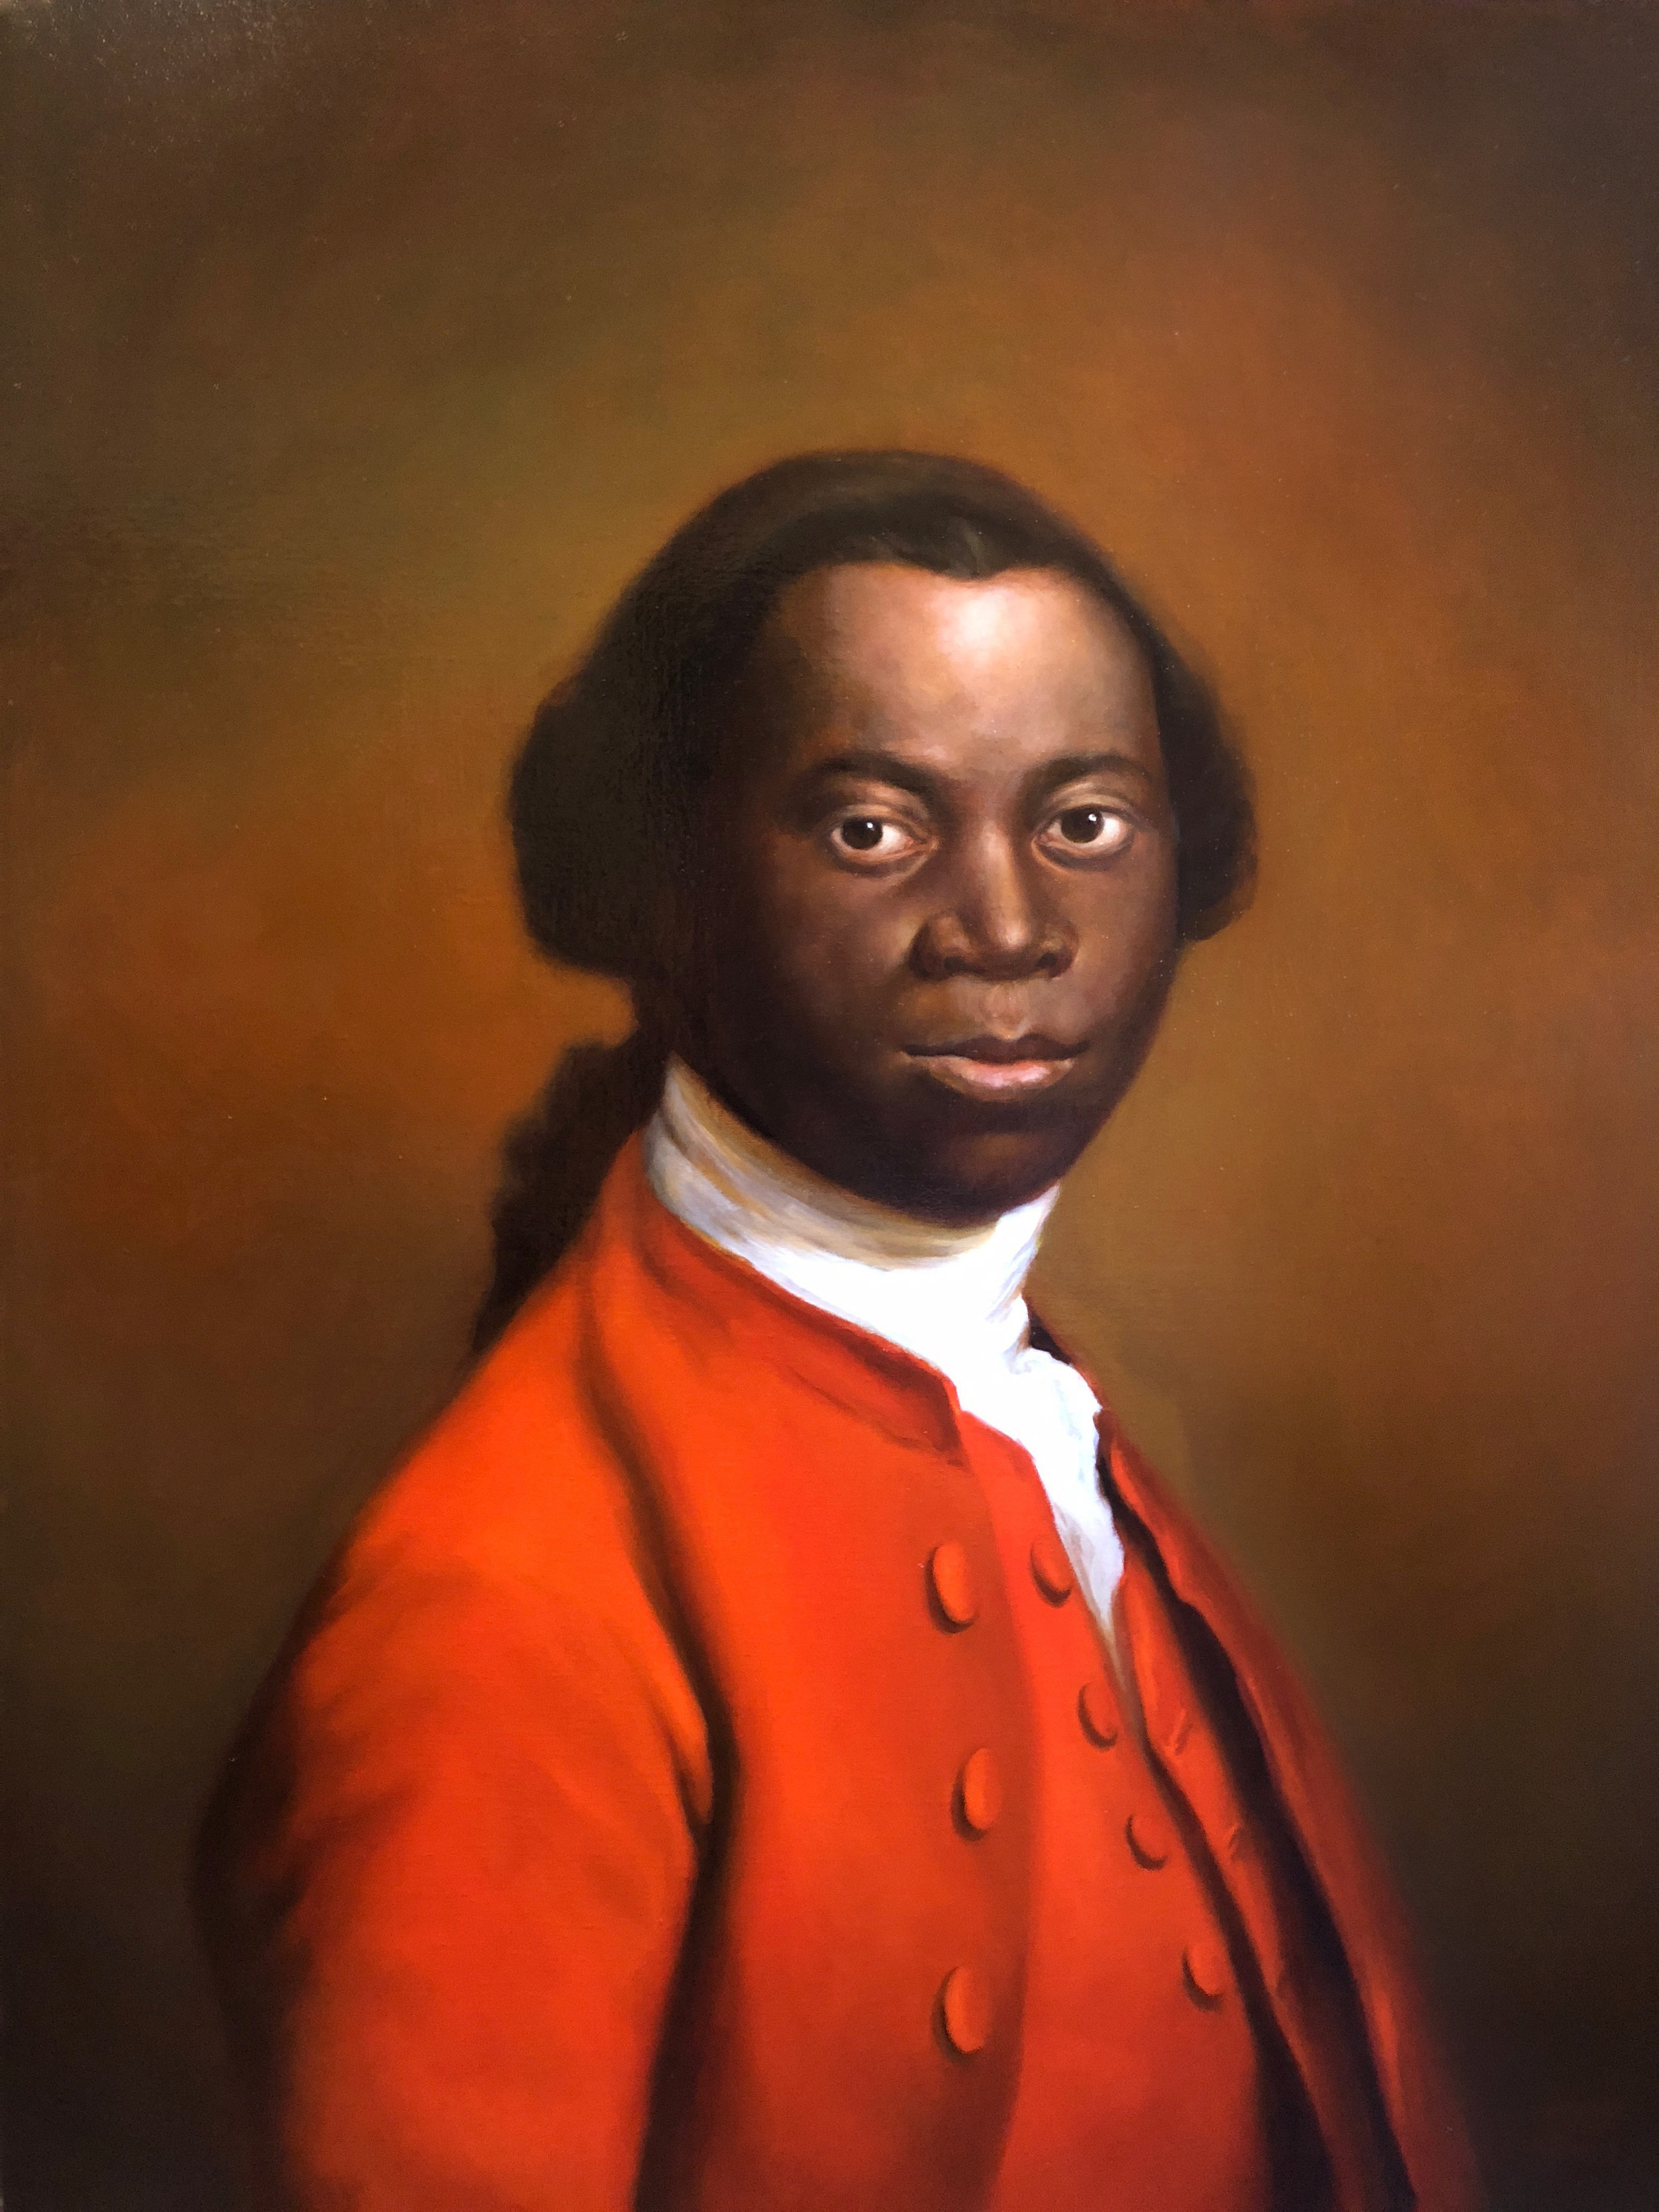 """Ignatius Sancho after Allan Ramsay, 1757""  2018, oil on linen, 20 x 26 in. Private collection."